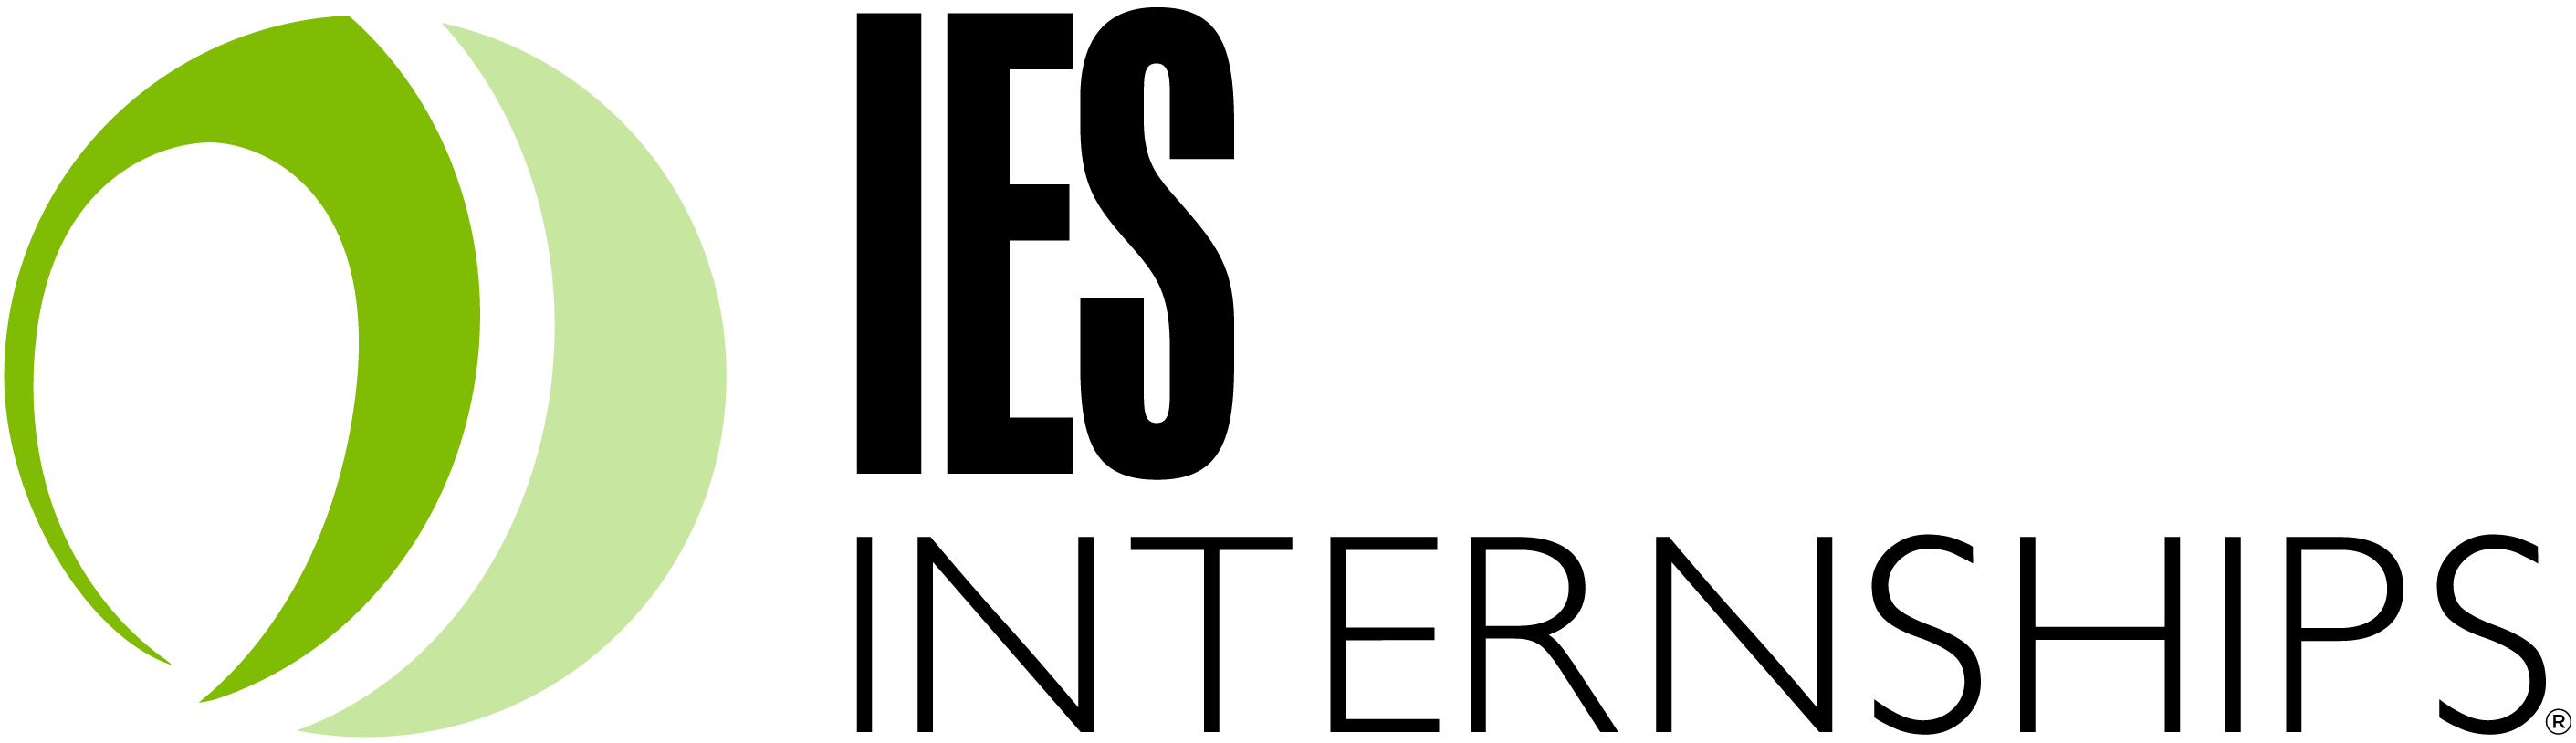 IES Internships Logo with Name and circle icon with two shades of green